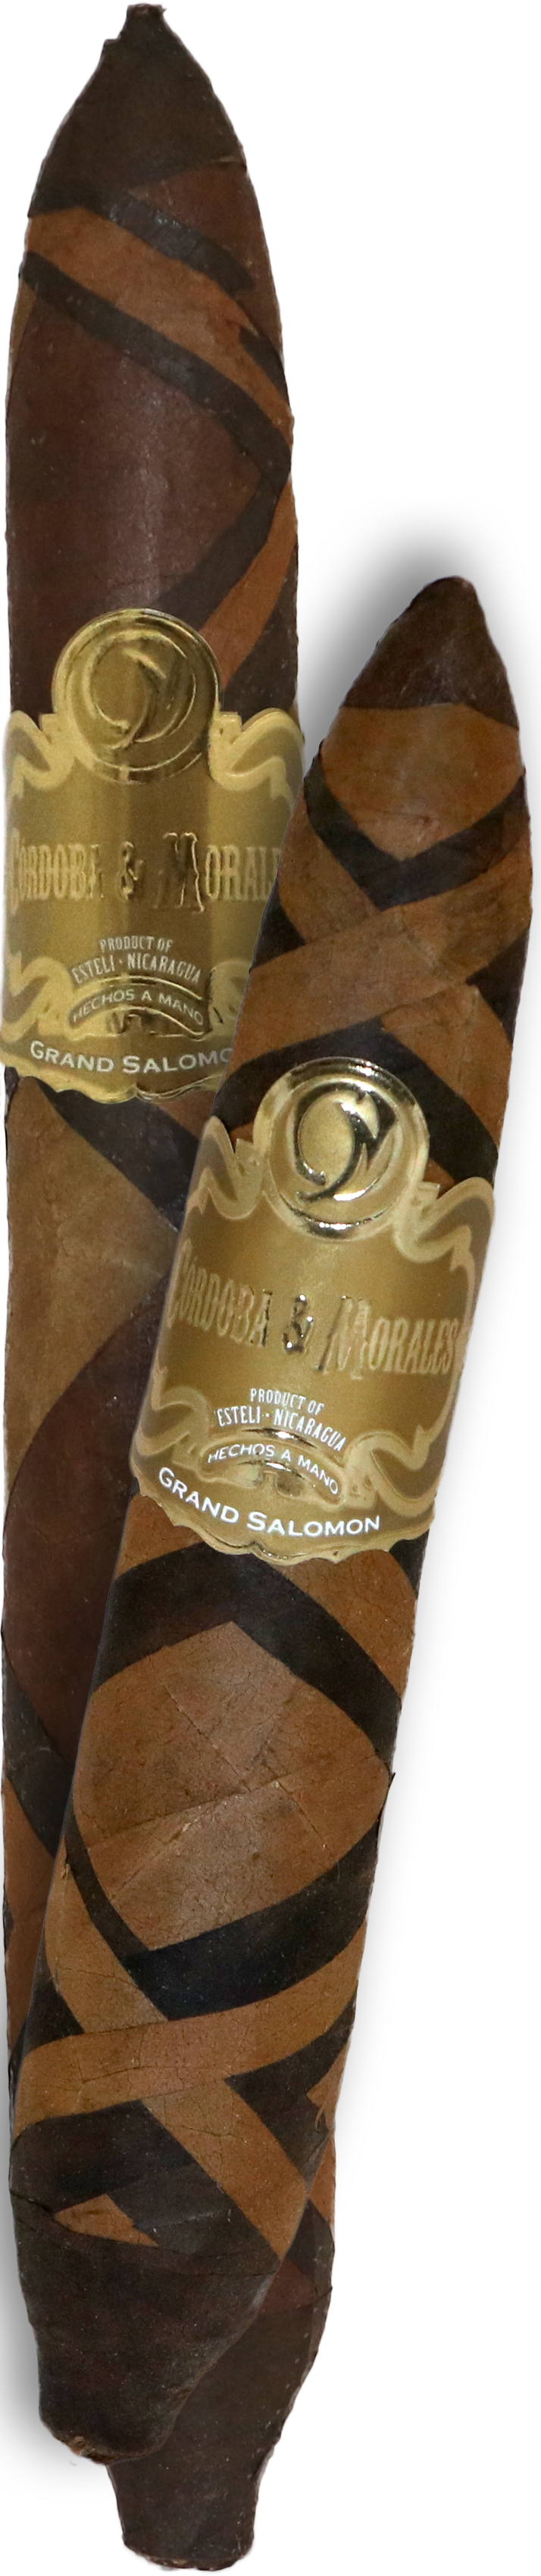 Grand Salomone and Grand Mini Salomone